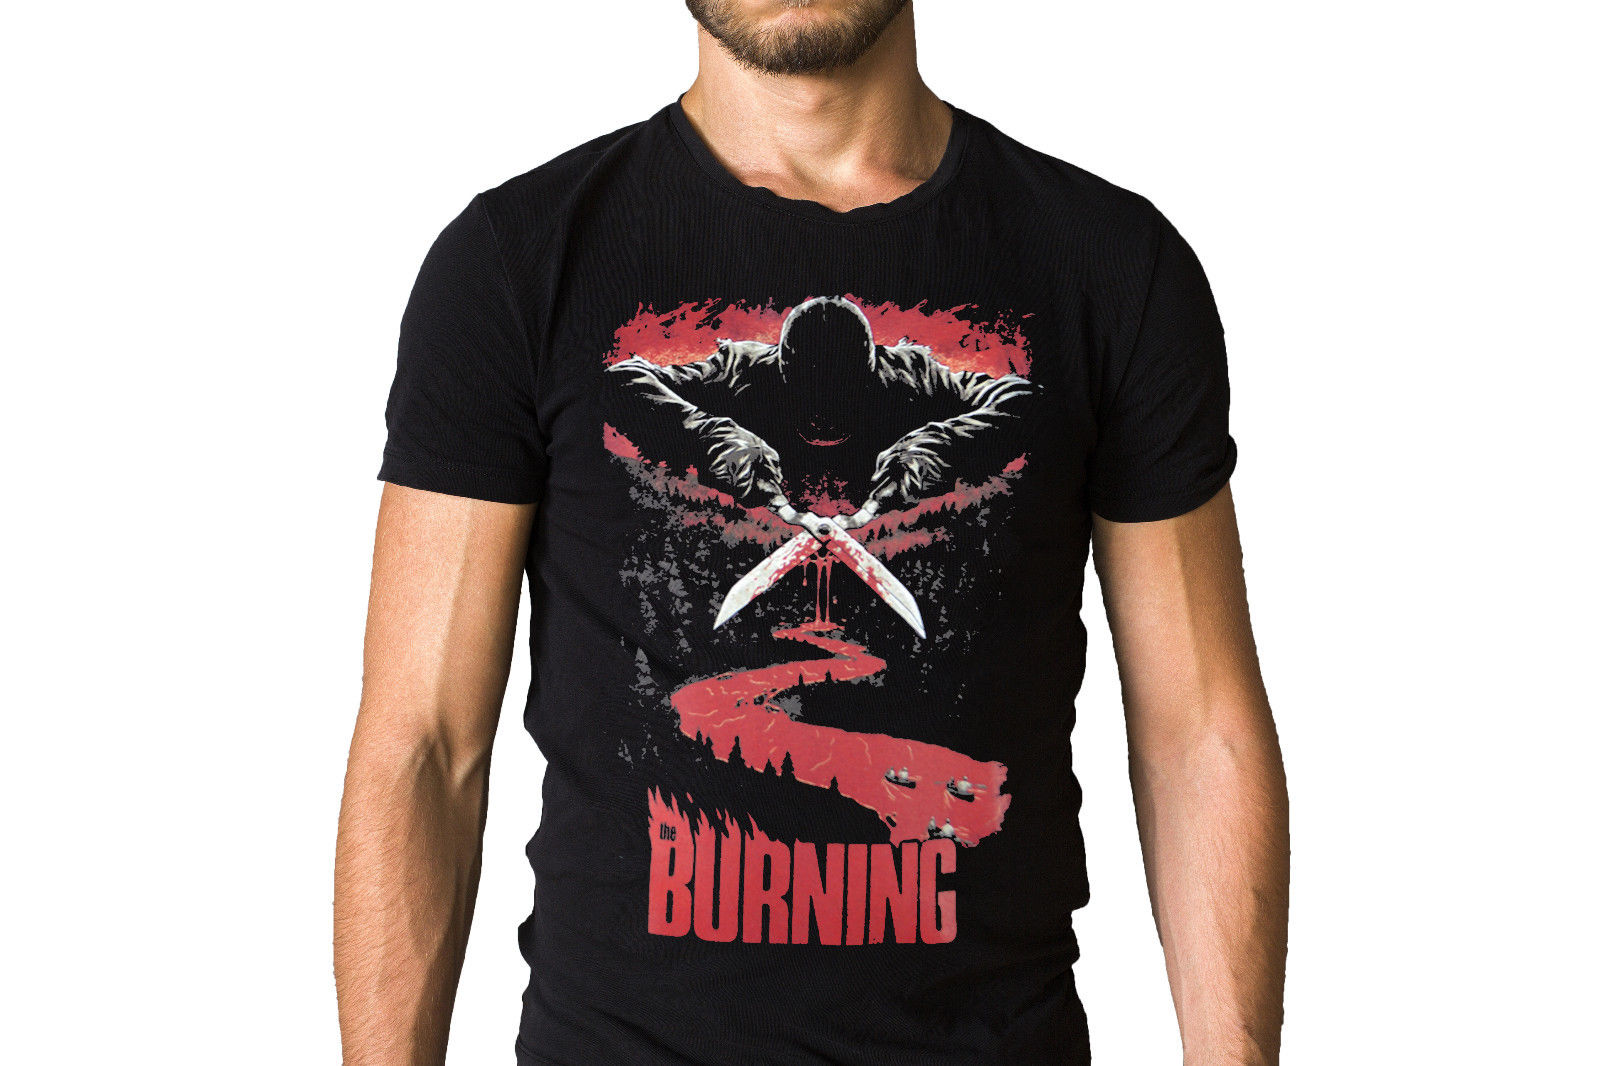 The Burning 1981 Film Poster T-Shirt